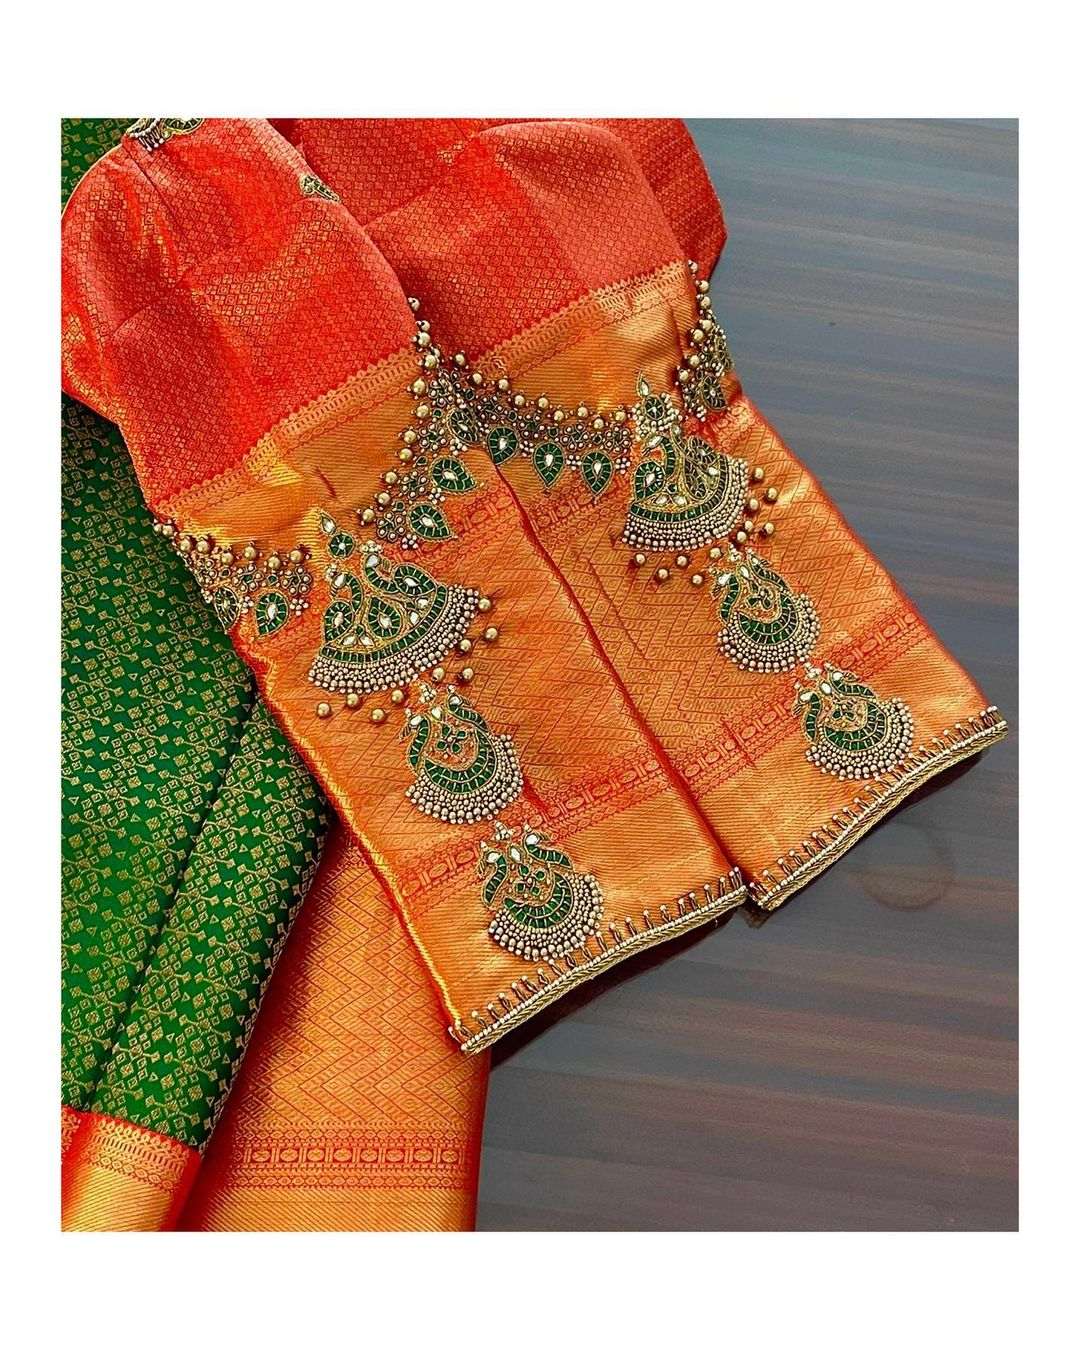 They convert our dream jewellery designs to embroidery on outfits. Stunning designer blouse with necklace theme hand embroidery work sleeves.  2021-03-12